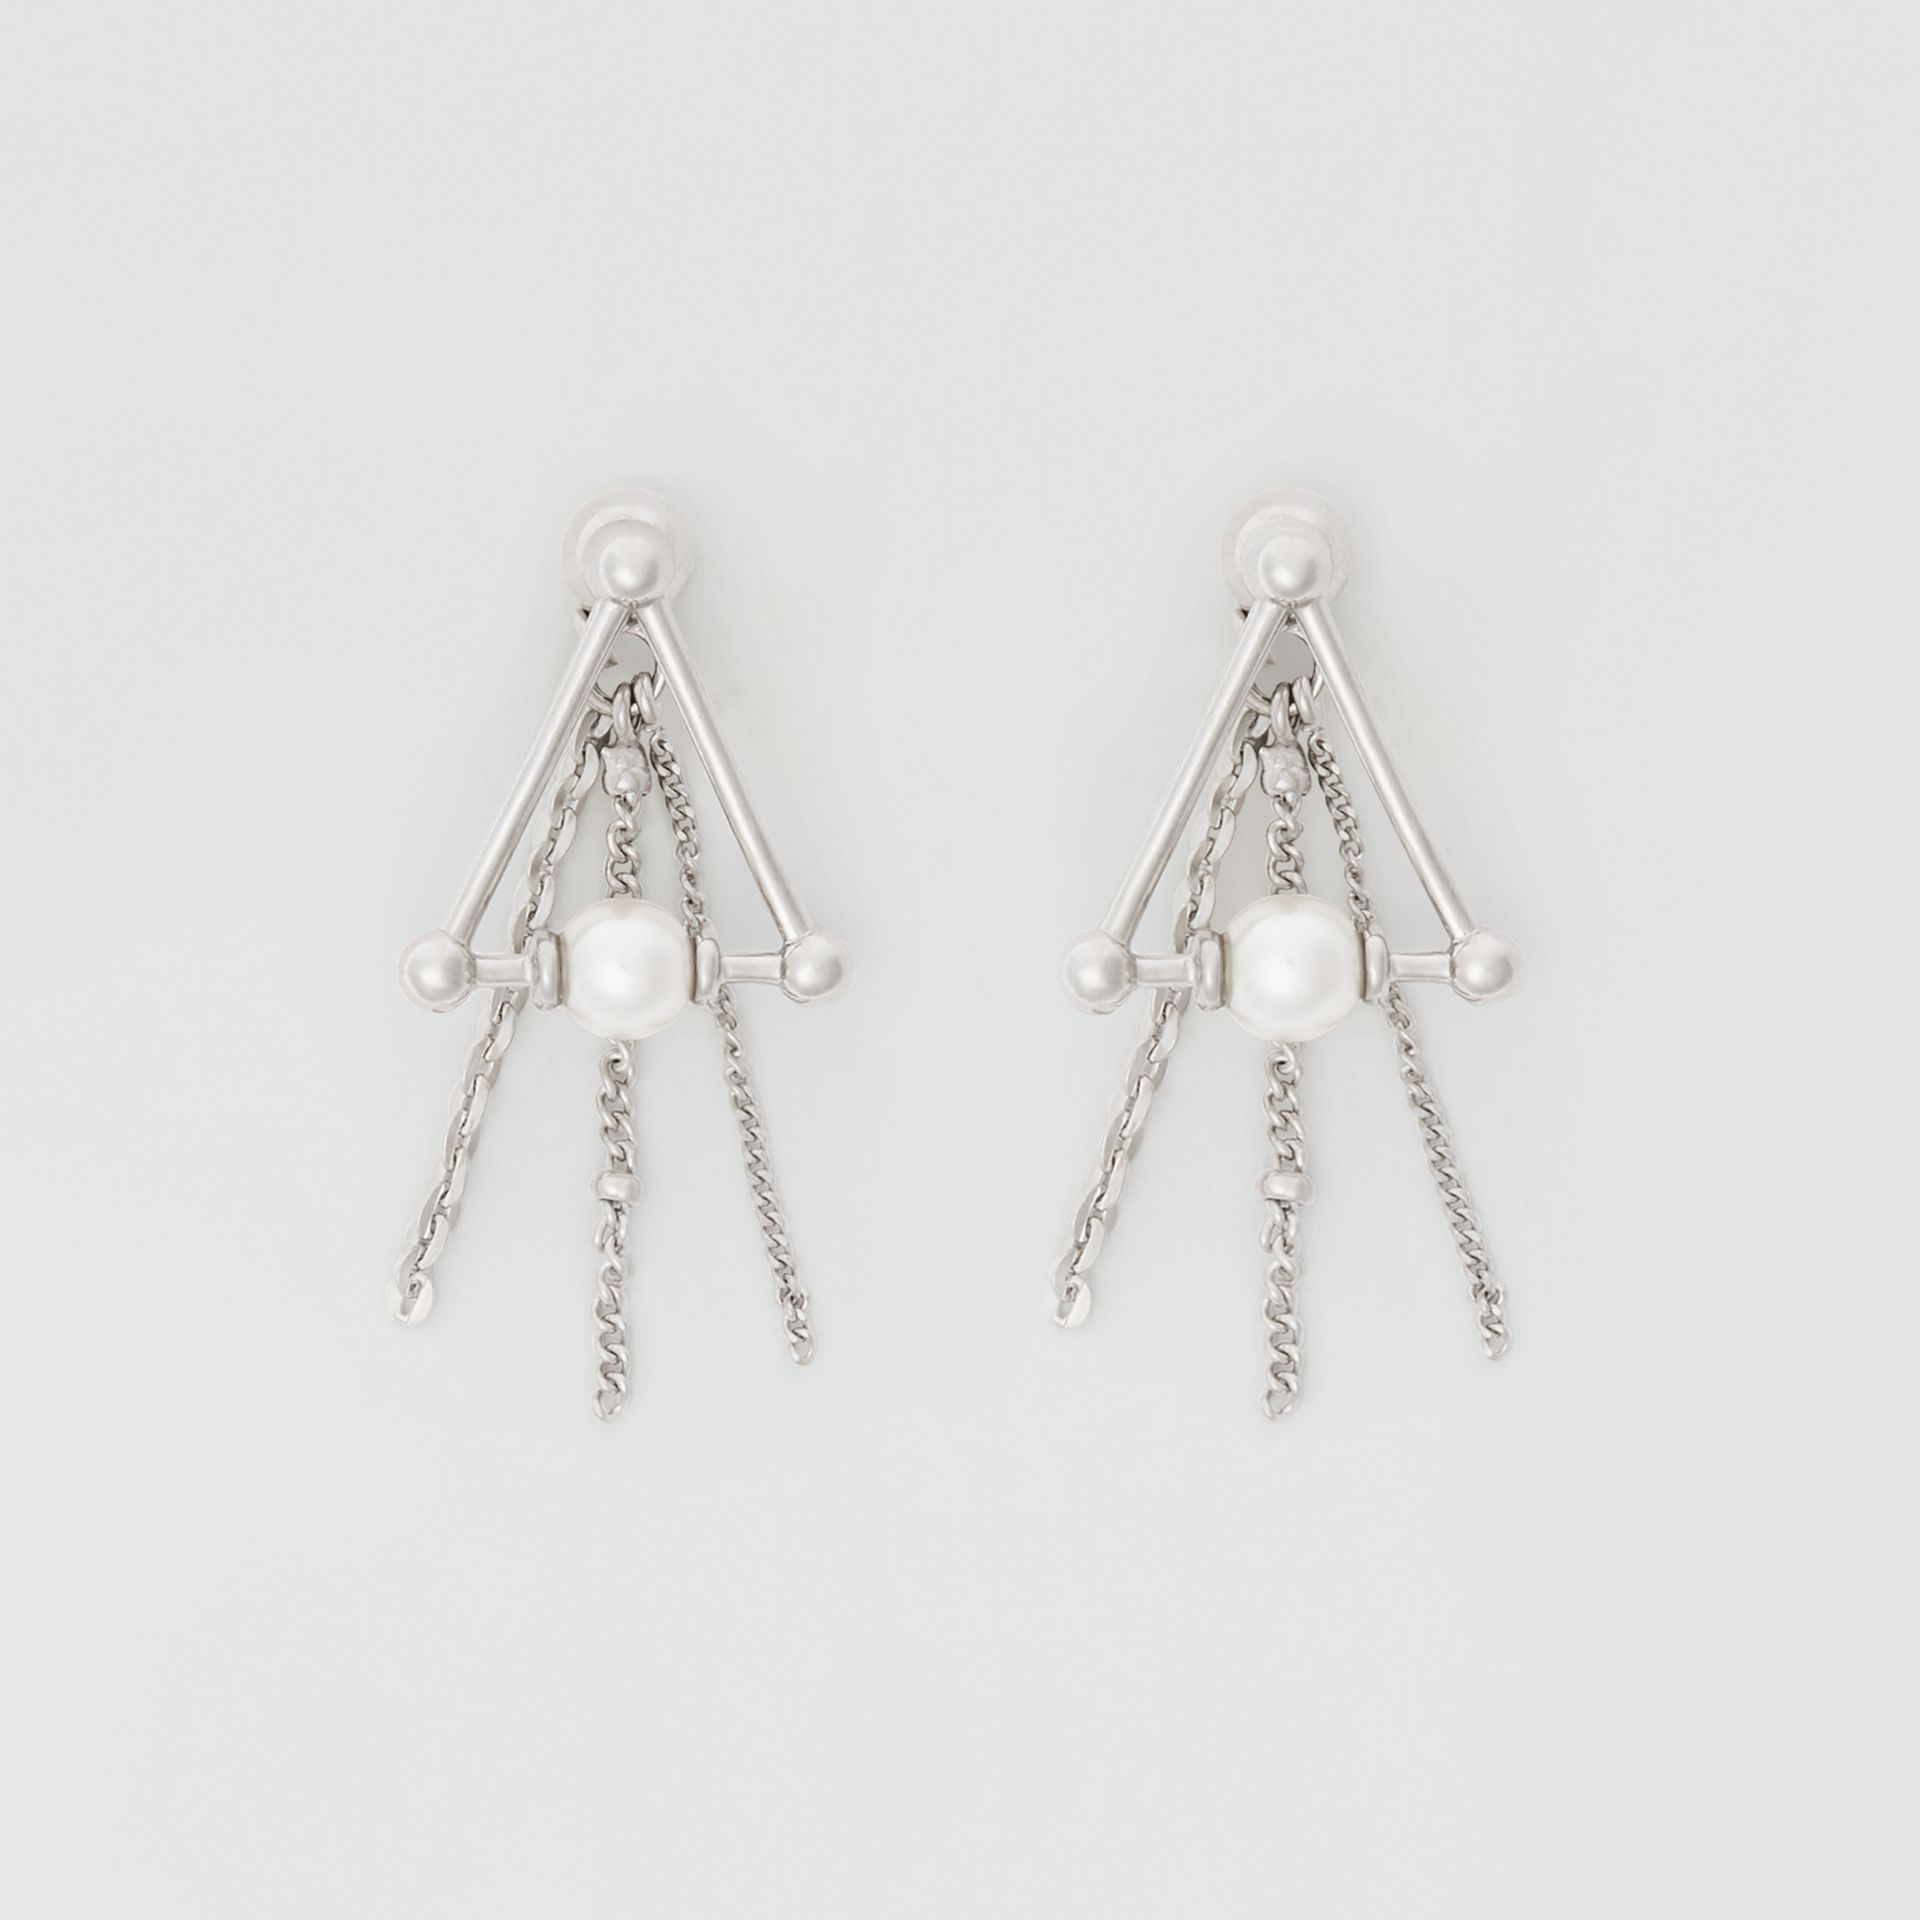 Pendants d'oreilles perle de synthèse et triangle plaqués palladium (Palladio) - Femme | Burberry - photo de la galerie 0